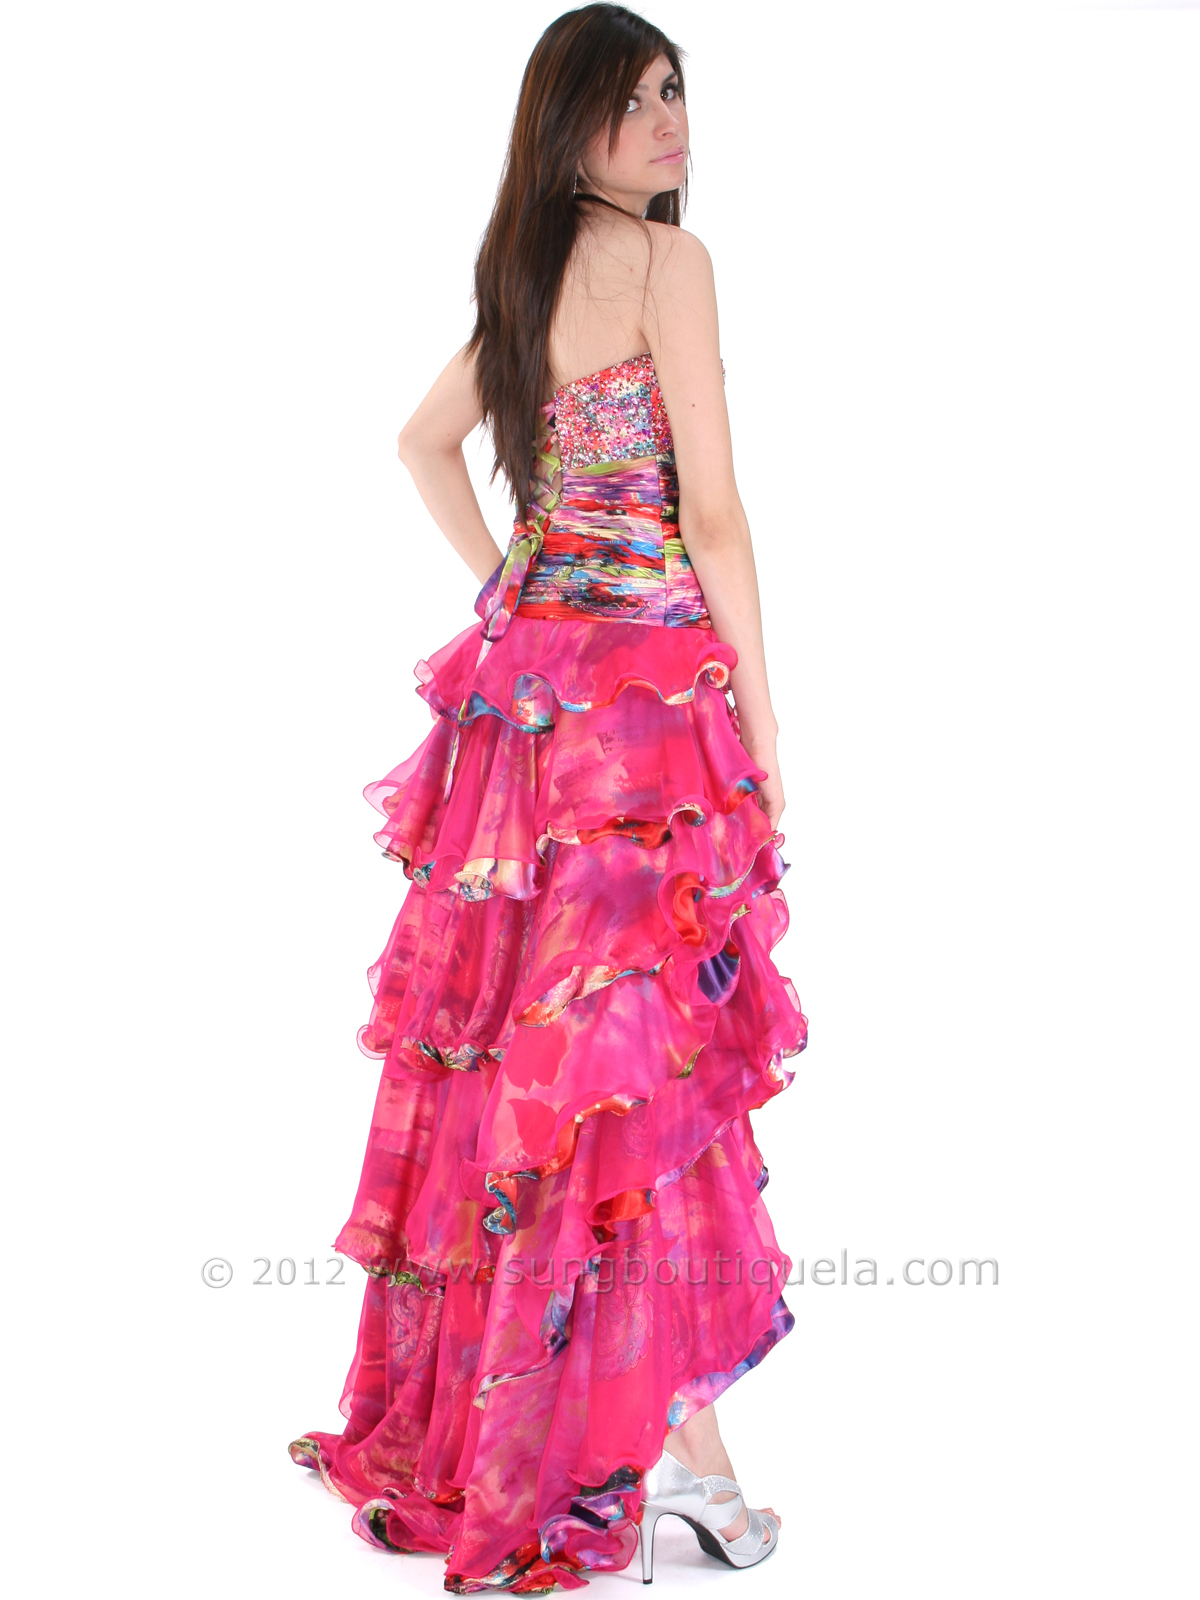 Strapless High Low Ruffle Print Prom Dress Sung Boutique